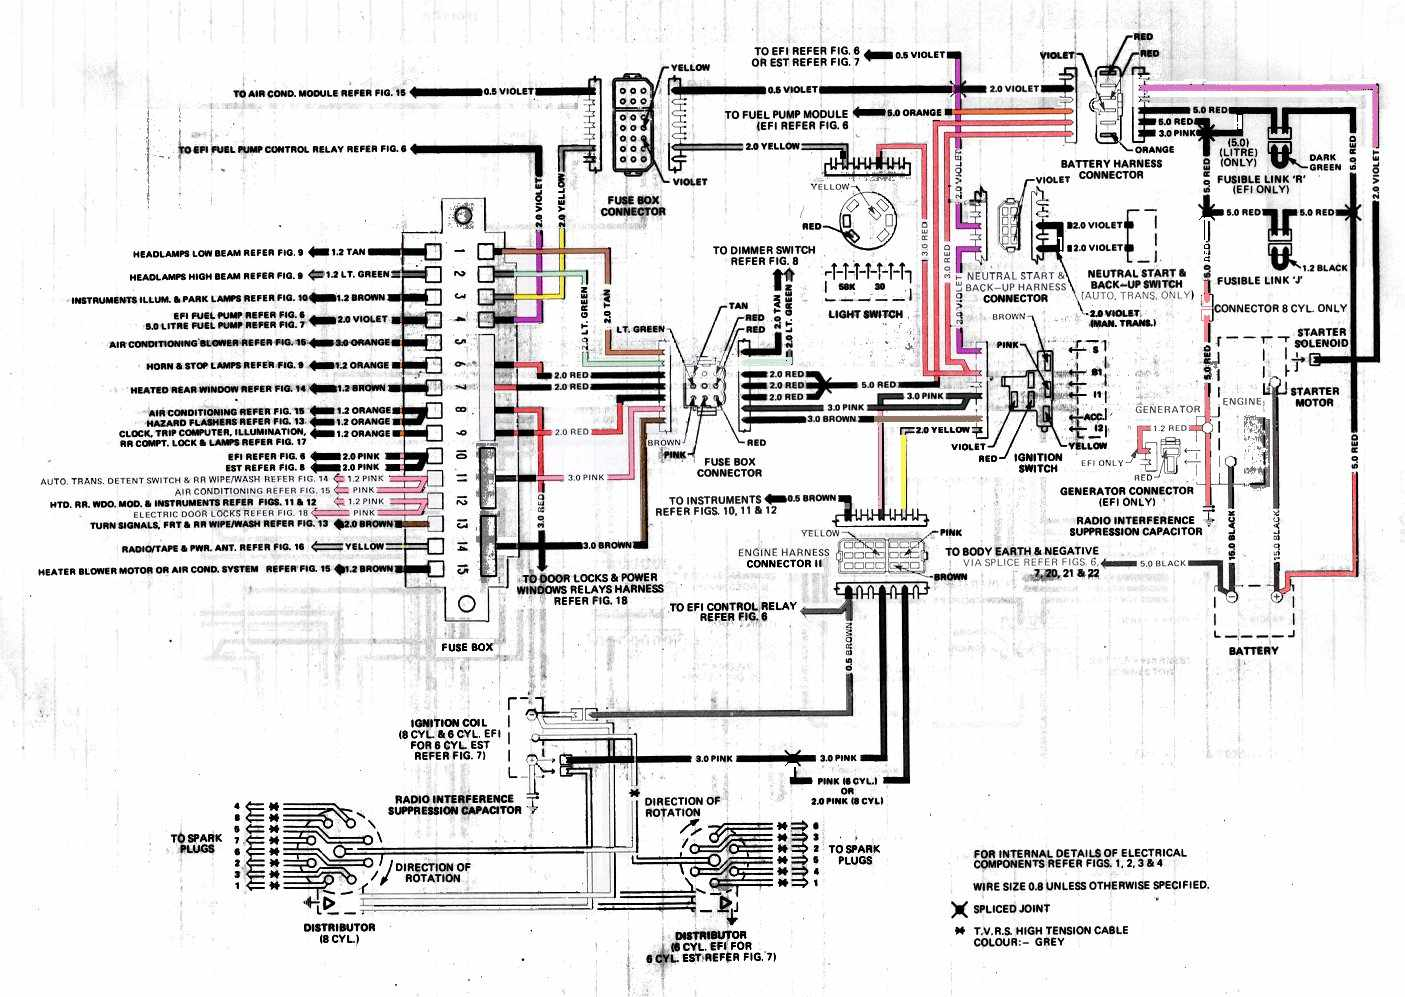 Generator wiring harness wiring diagrams schematics generator wiring harness wiring diagrams schematics generator wiring harness generac generator wiring harness generator wiring harness pooptronica Images